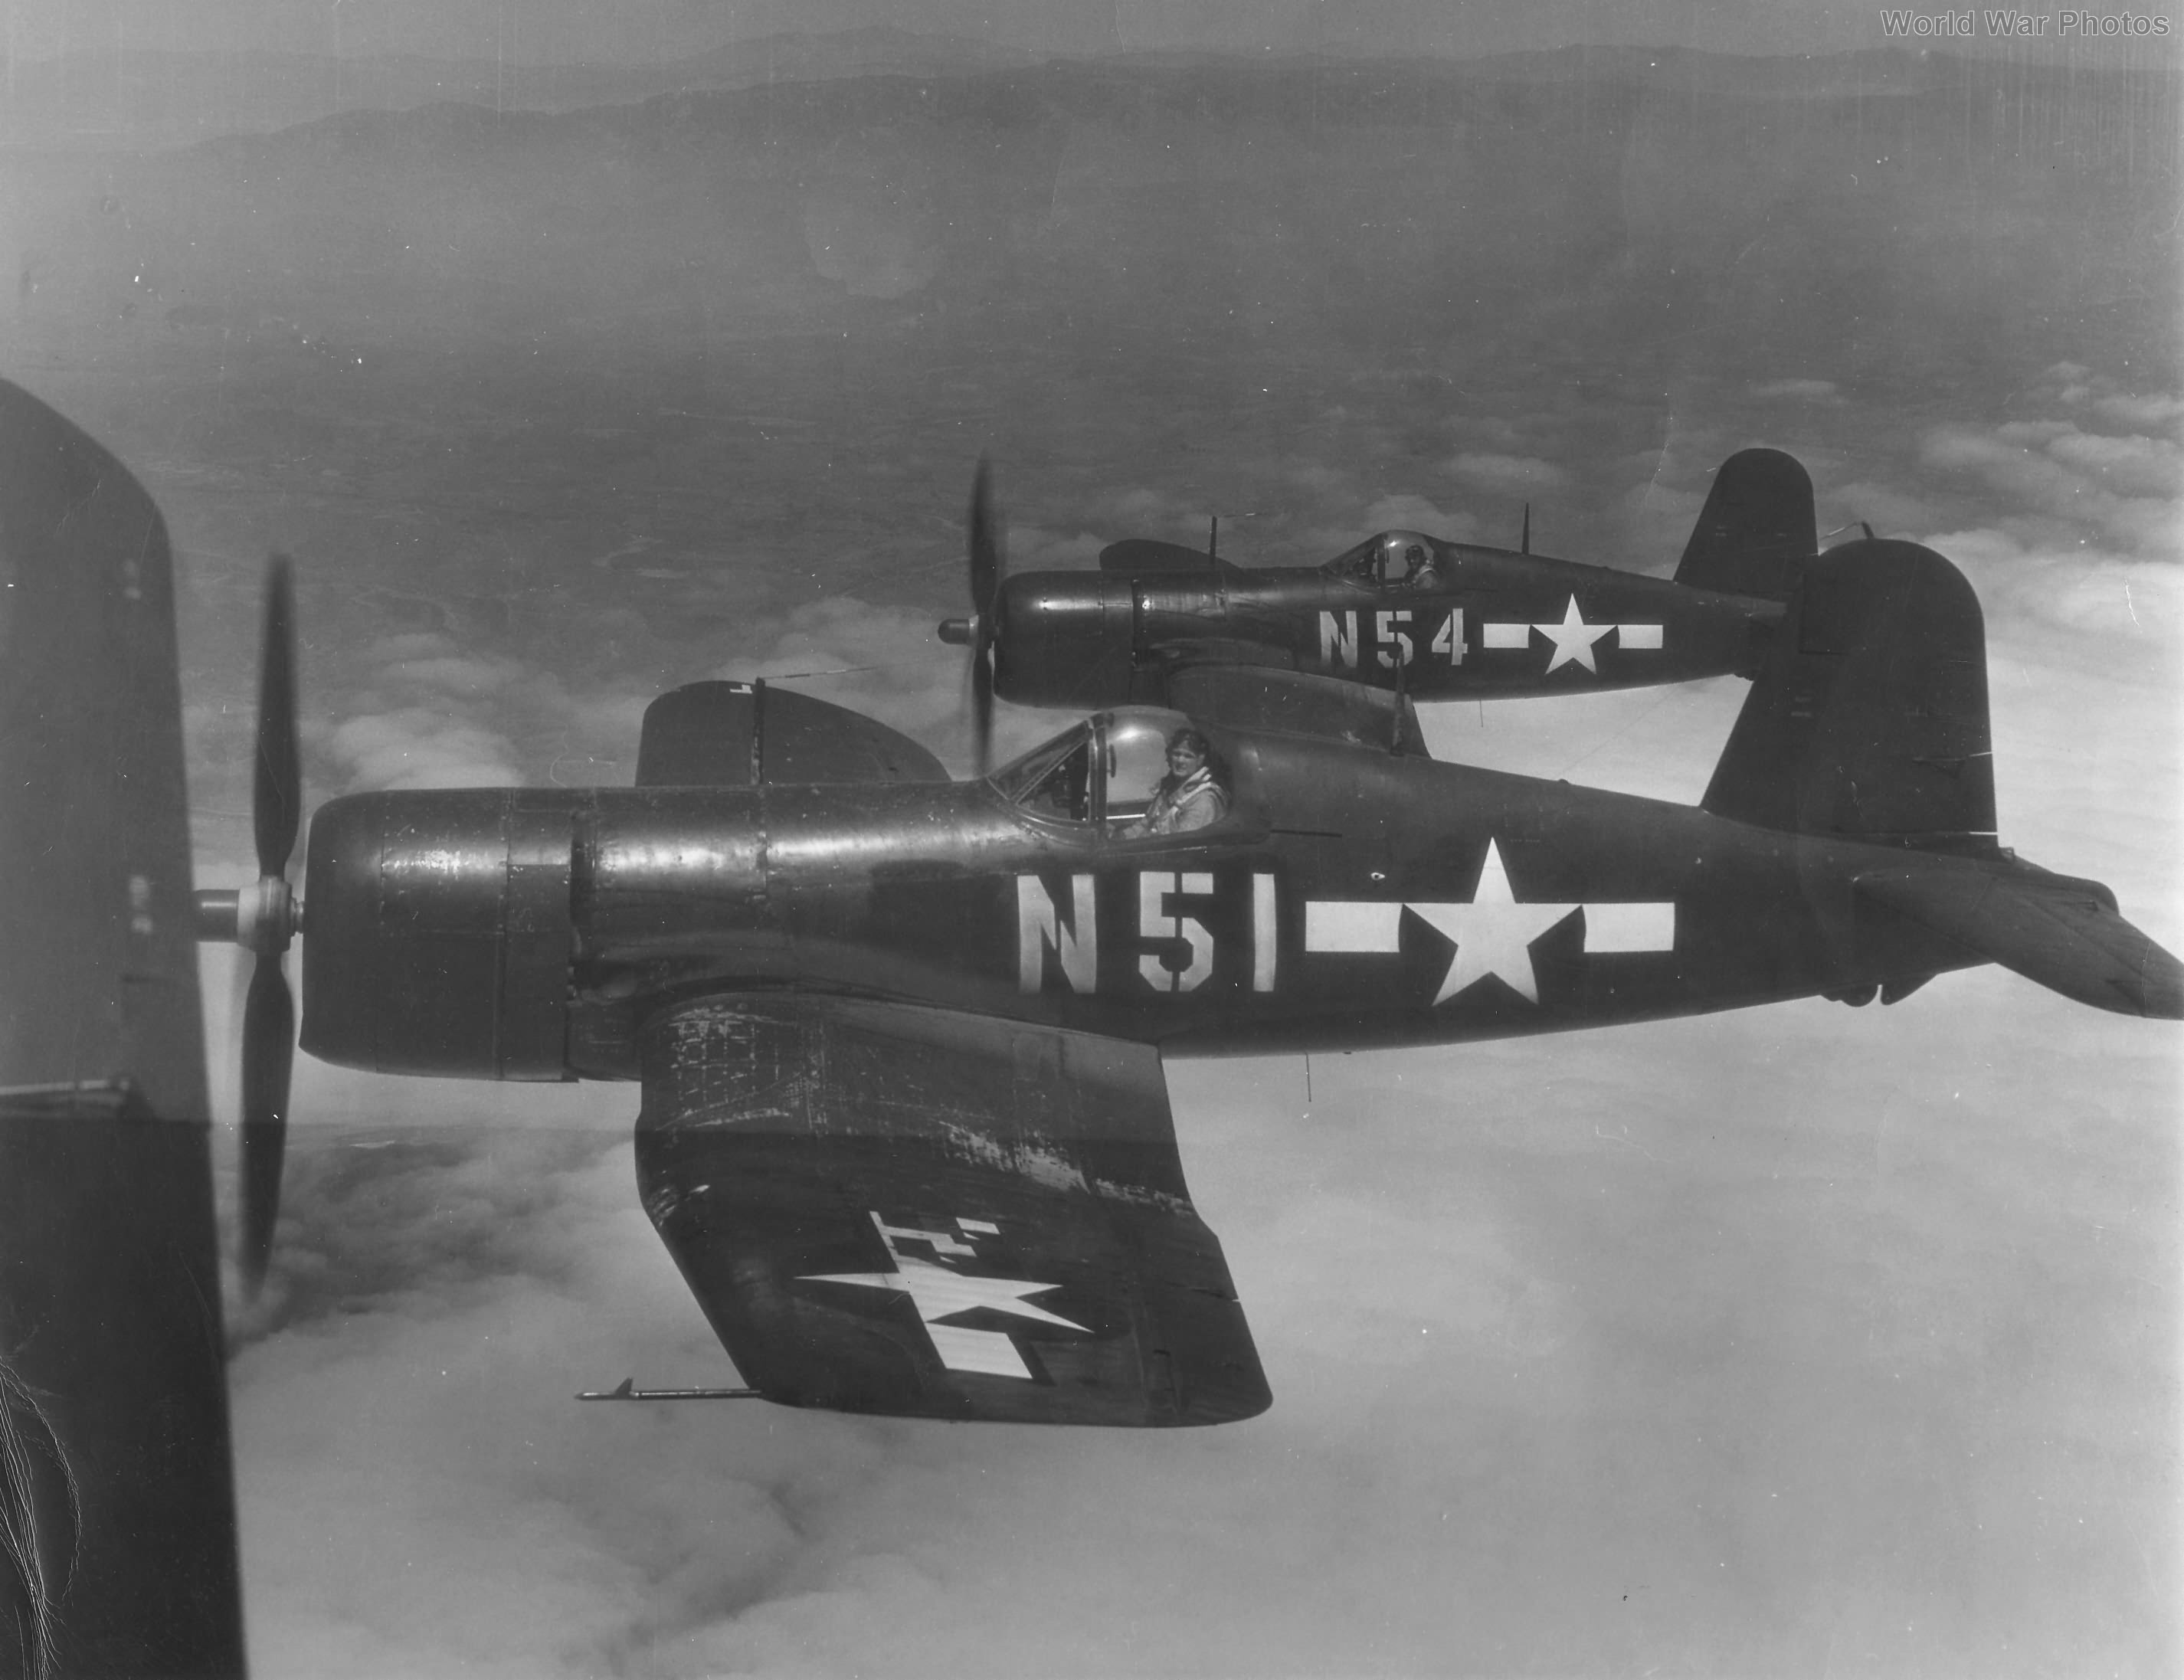 F4U-4 of VMF-155 flown by John Glenn